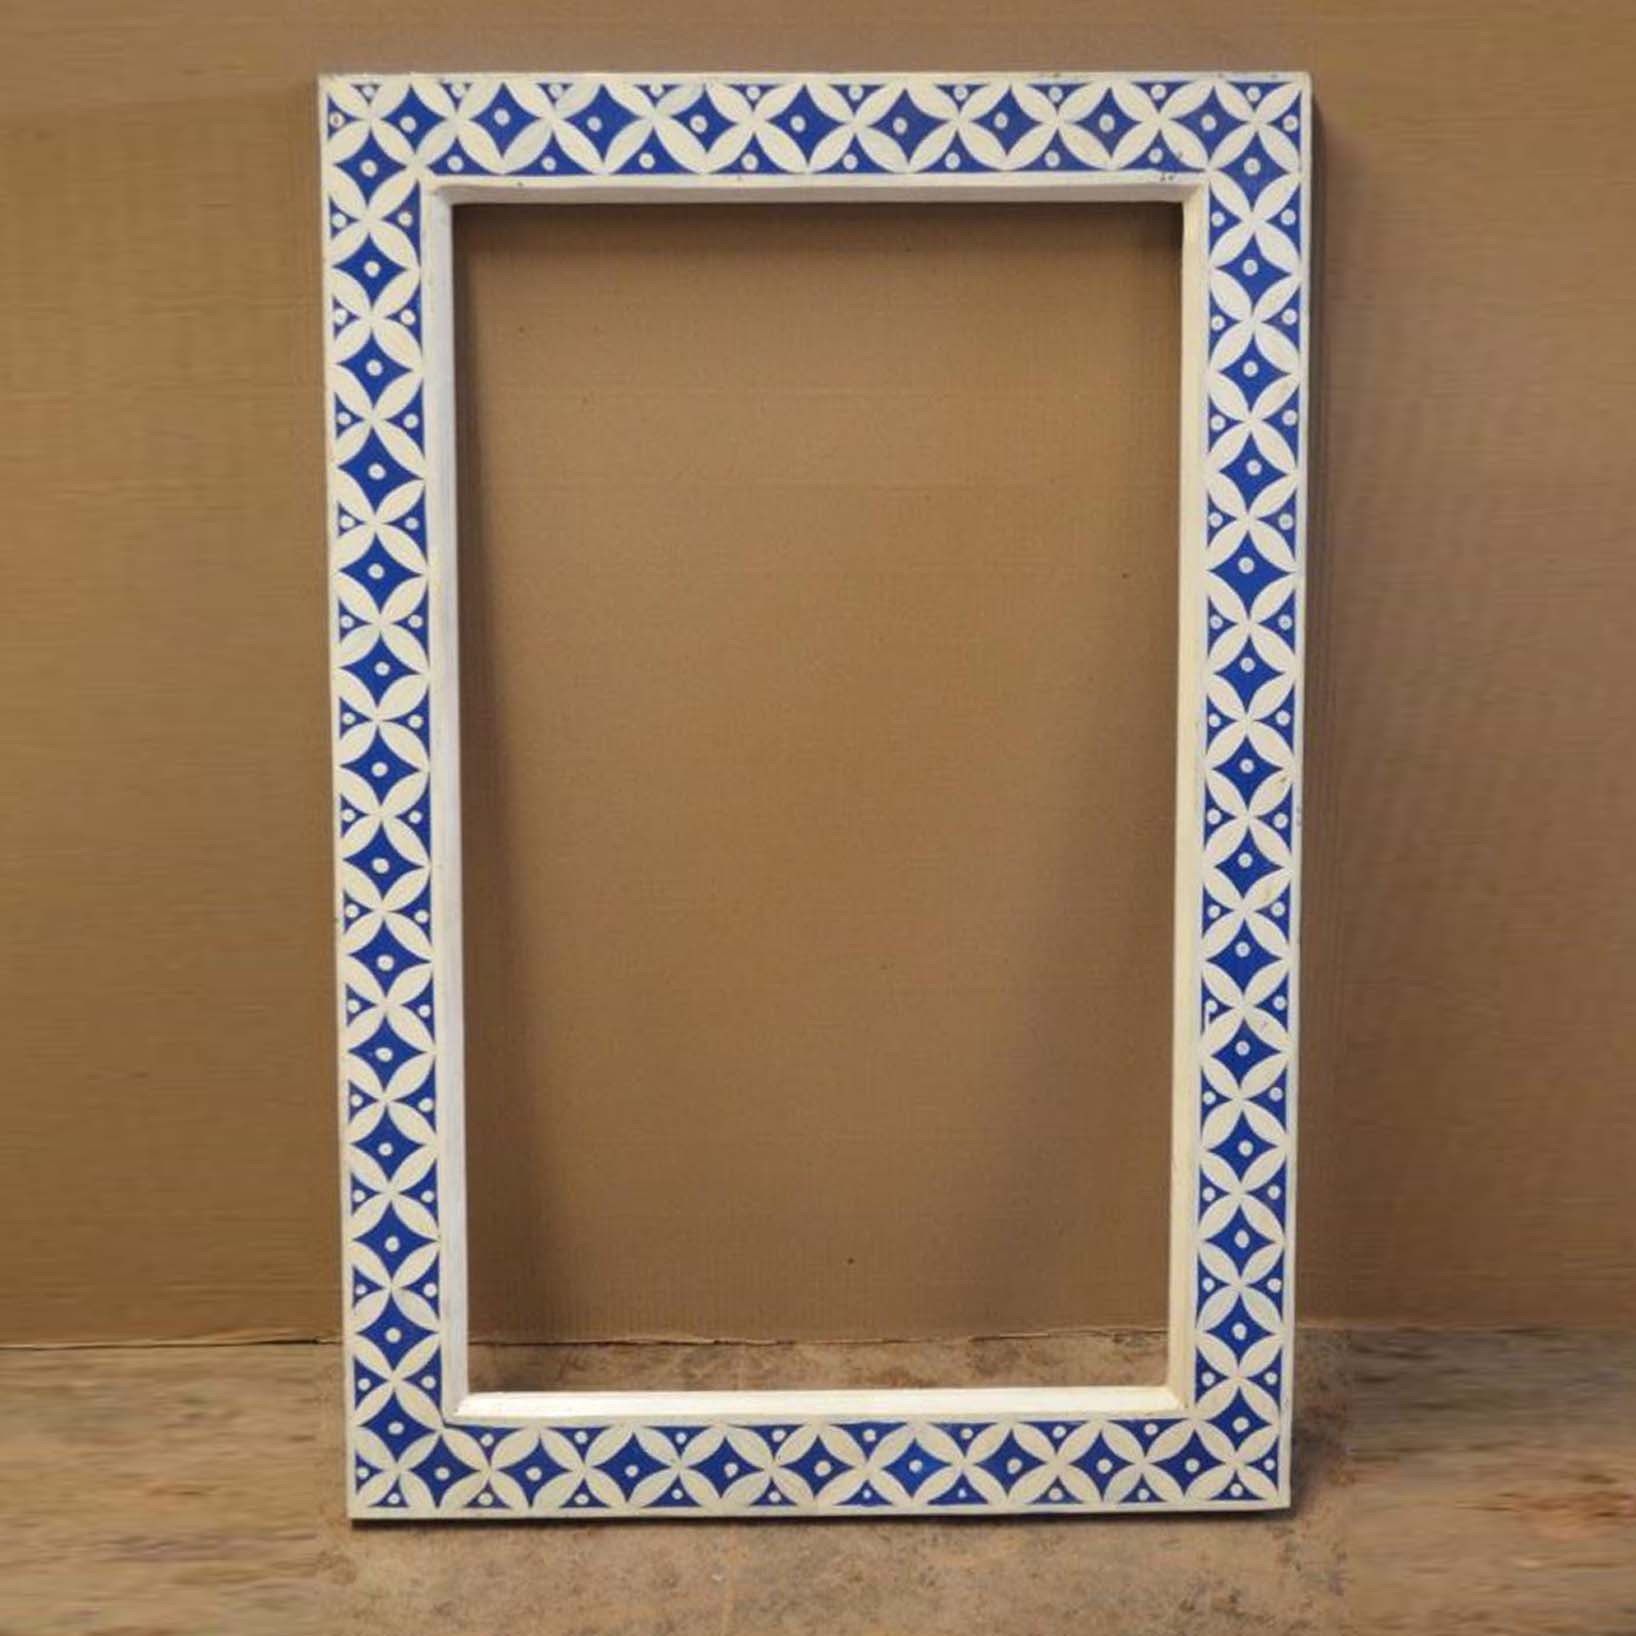 Old Fashioned How To Paint Mirror Frame Vignette - Framed Art Ideas ...